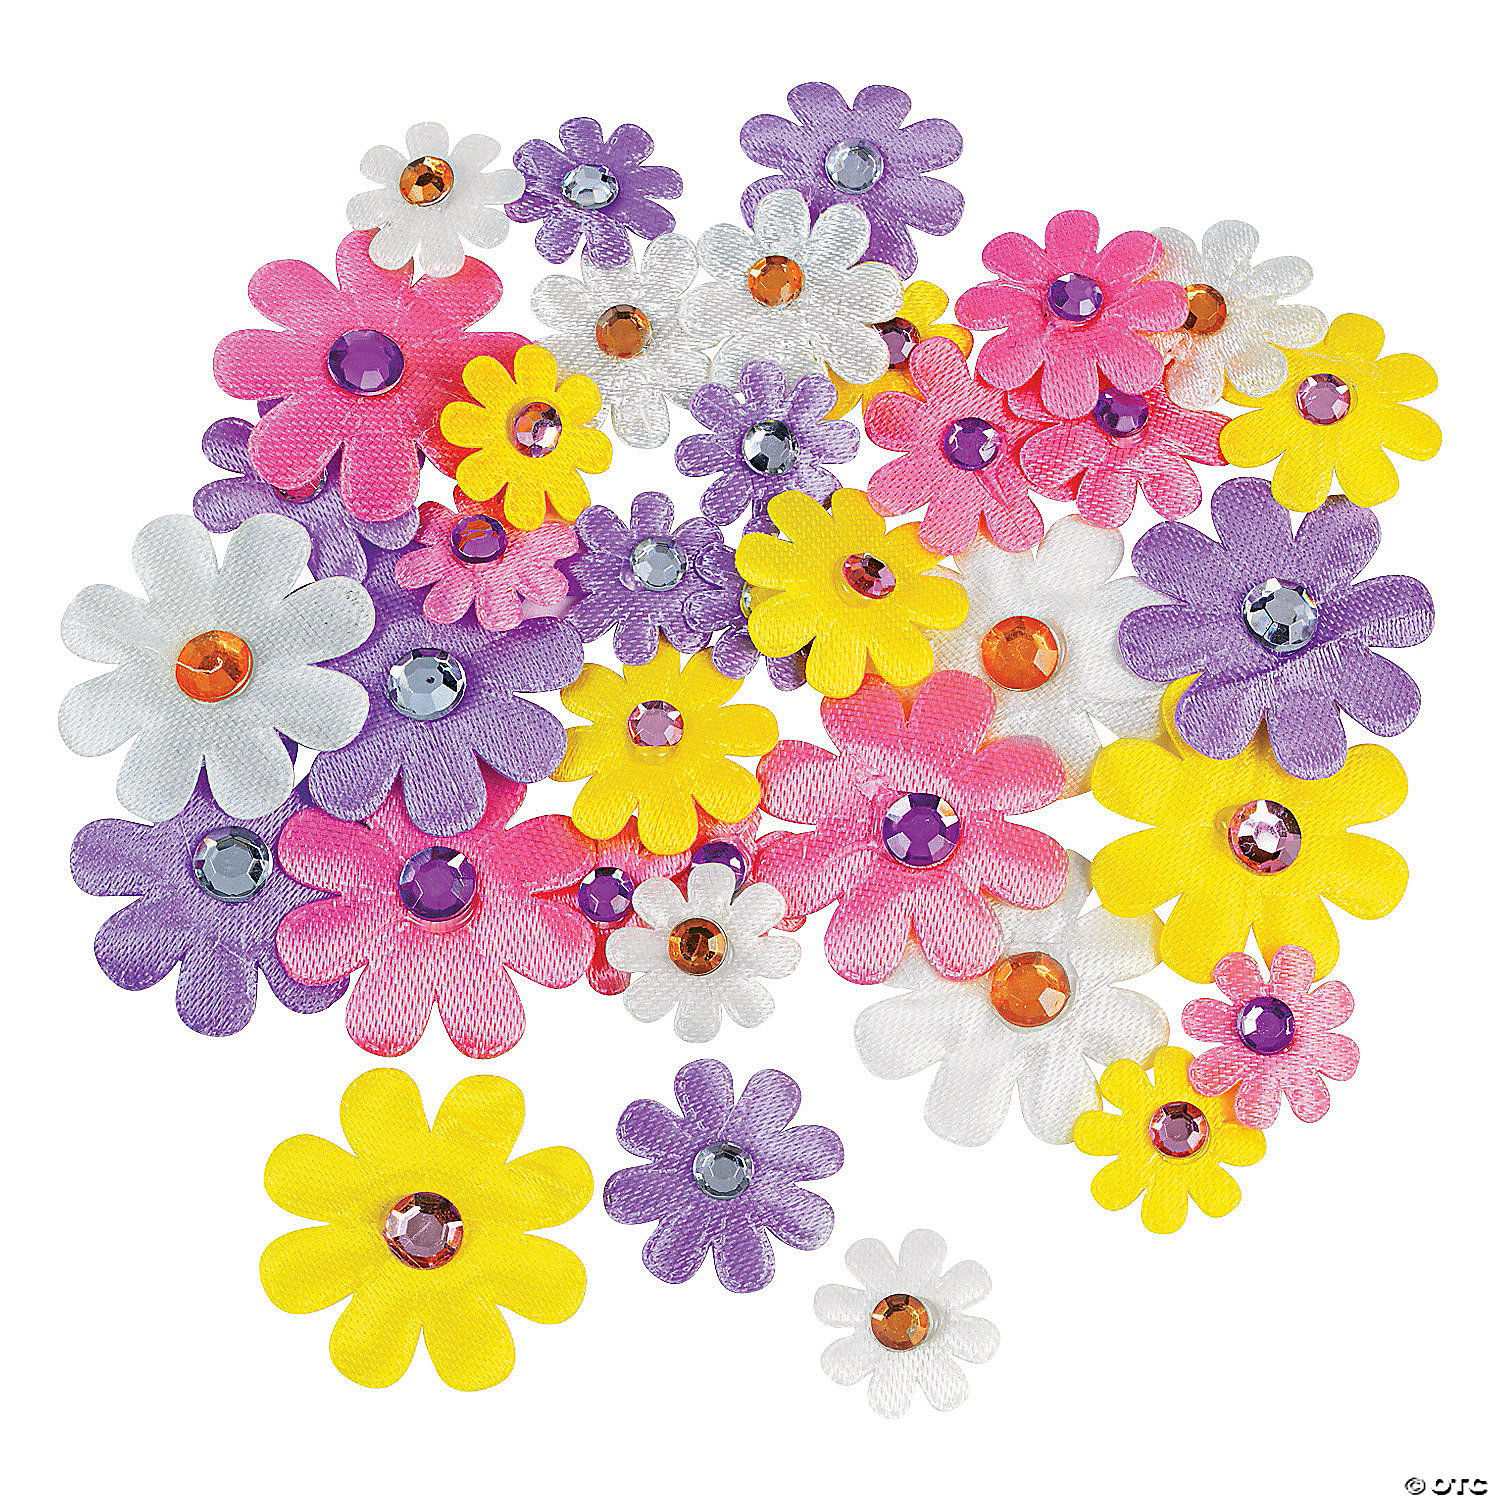 Arts and crafts jewels - Self Adhesive Daisies With Jewel Center